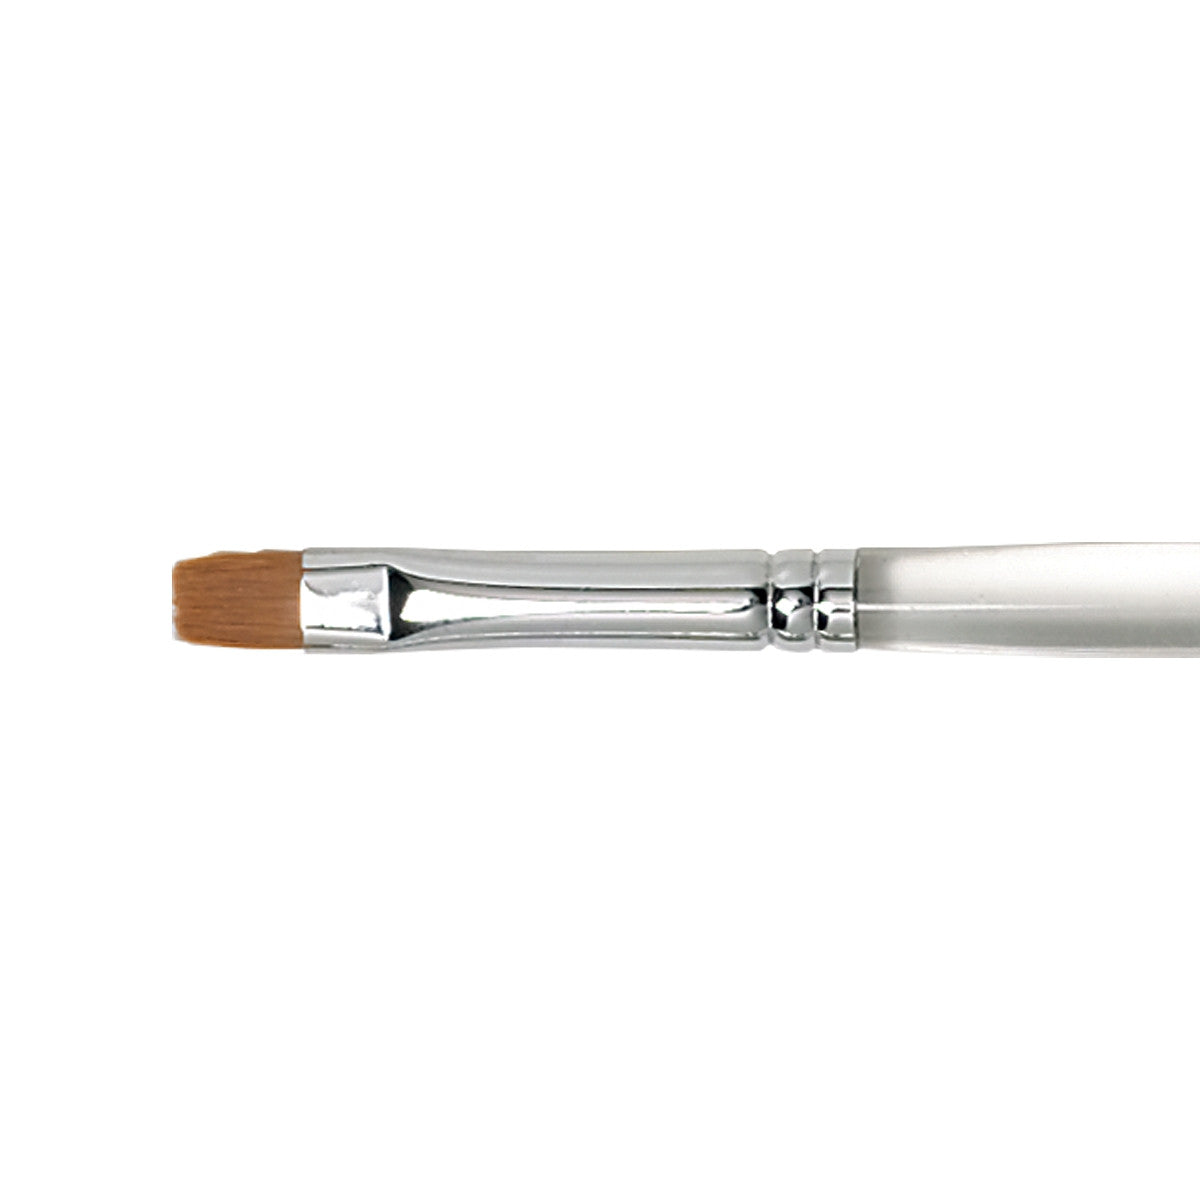 Duncan TB705 No. 6 Shader Brush